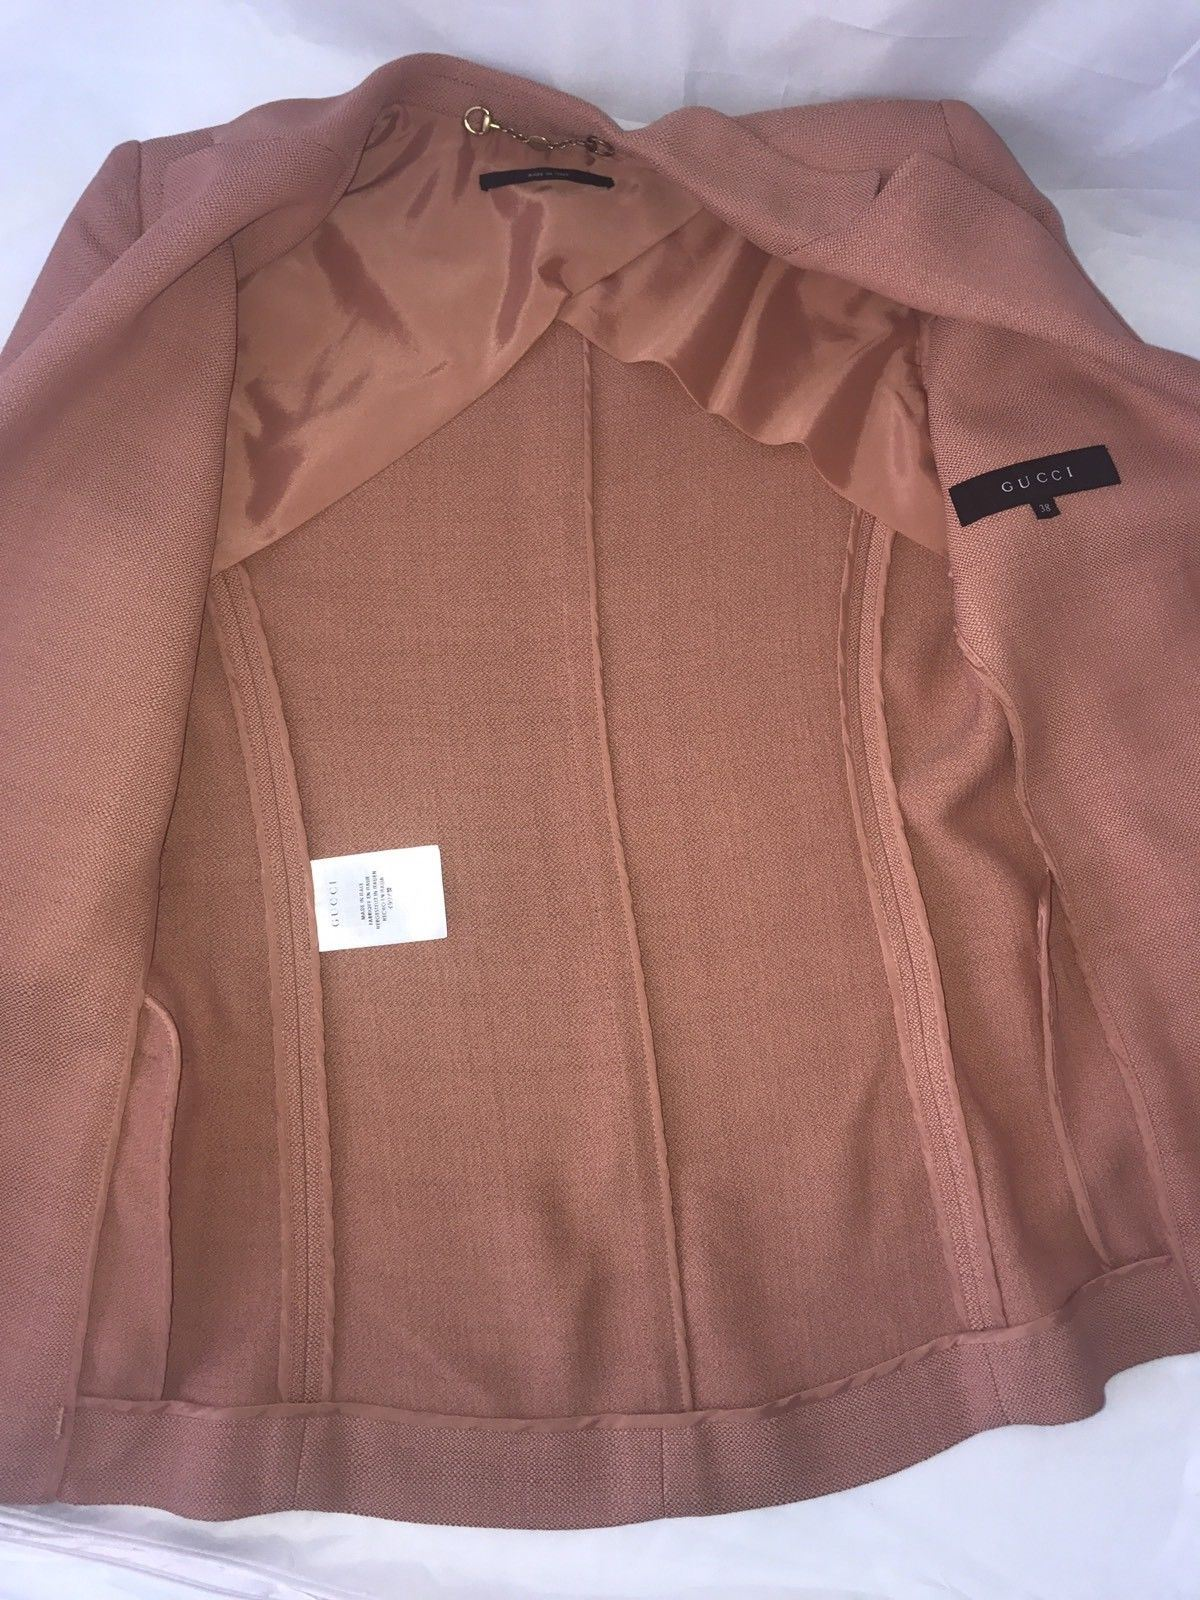 GUCCI Women's Jacket Blazer Size 2 (38 Euro) Made In Italy - BAYSUPERSTORE